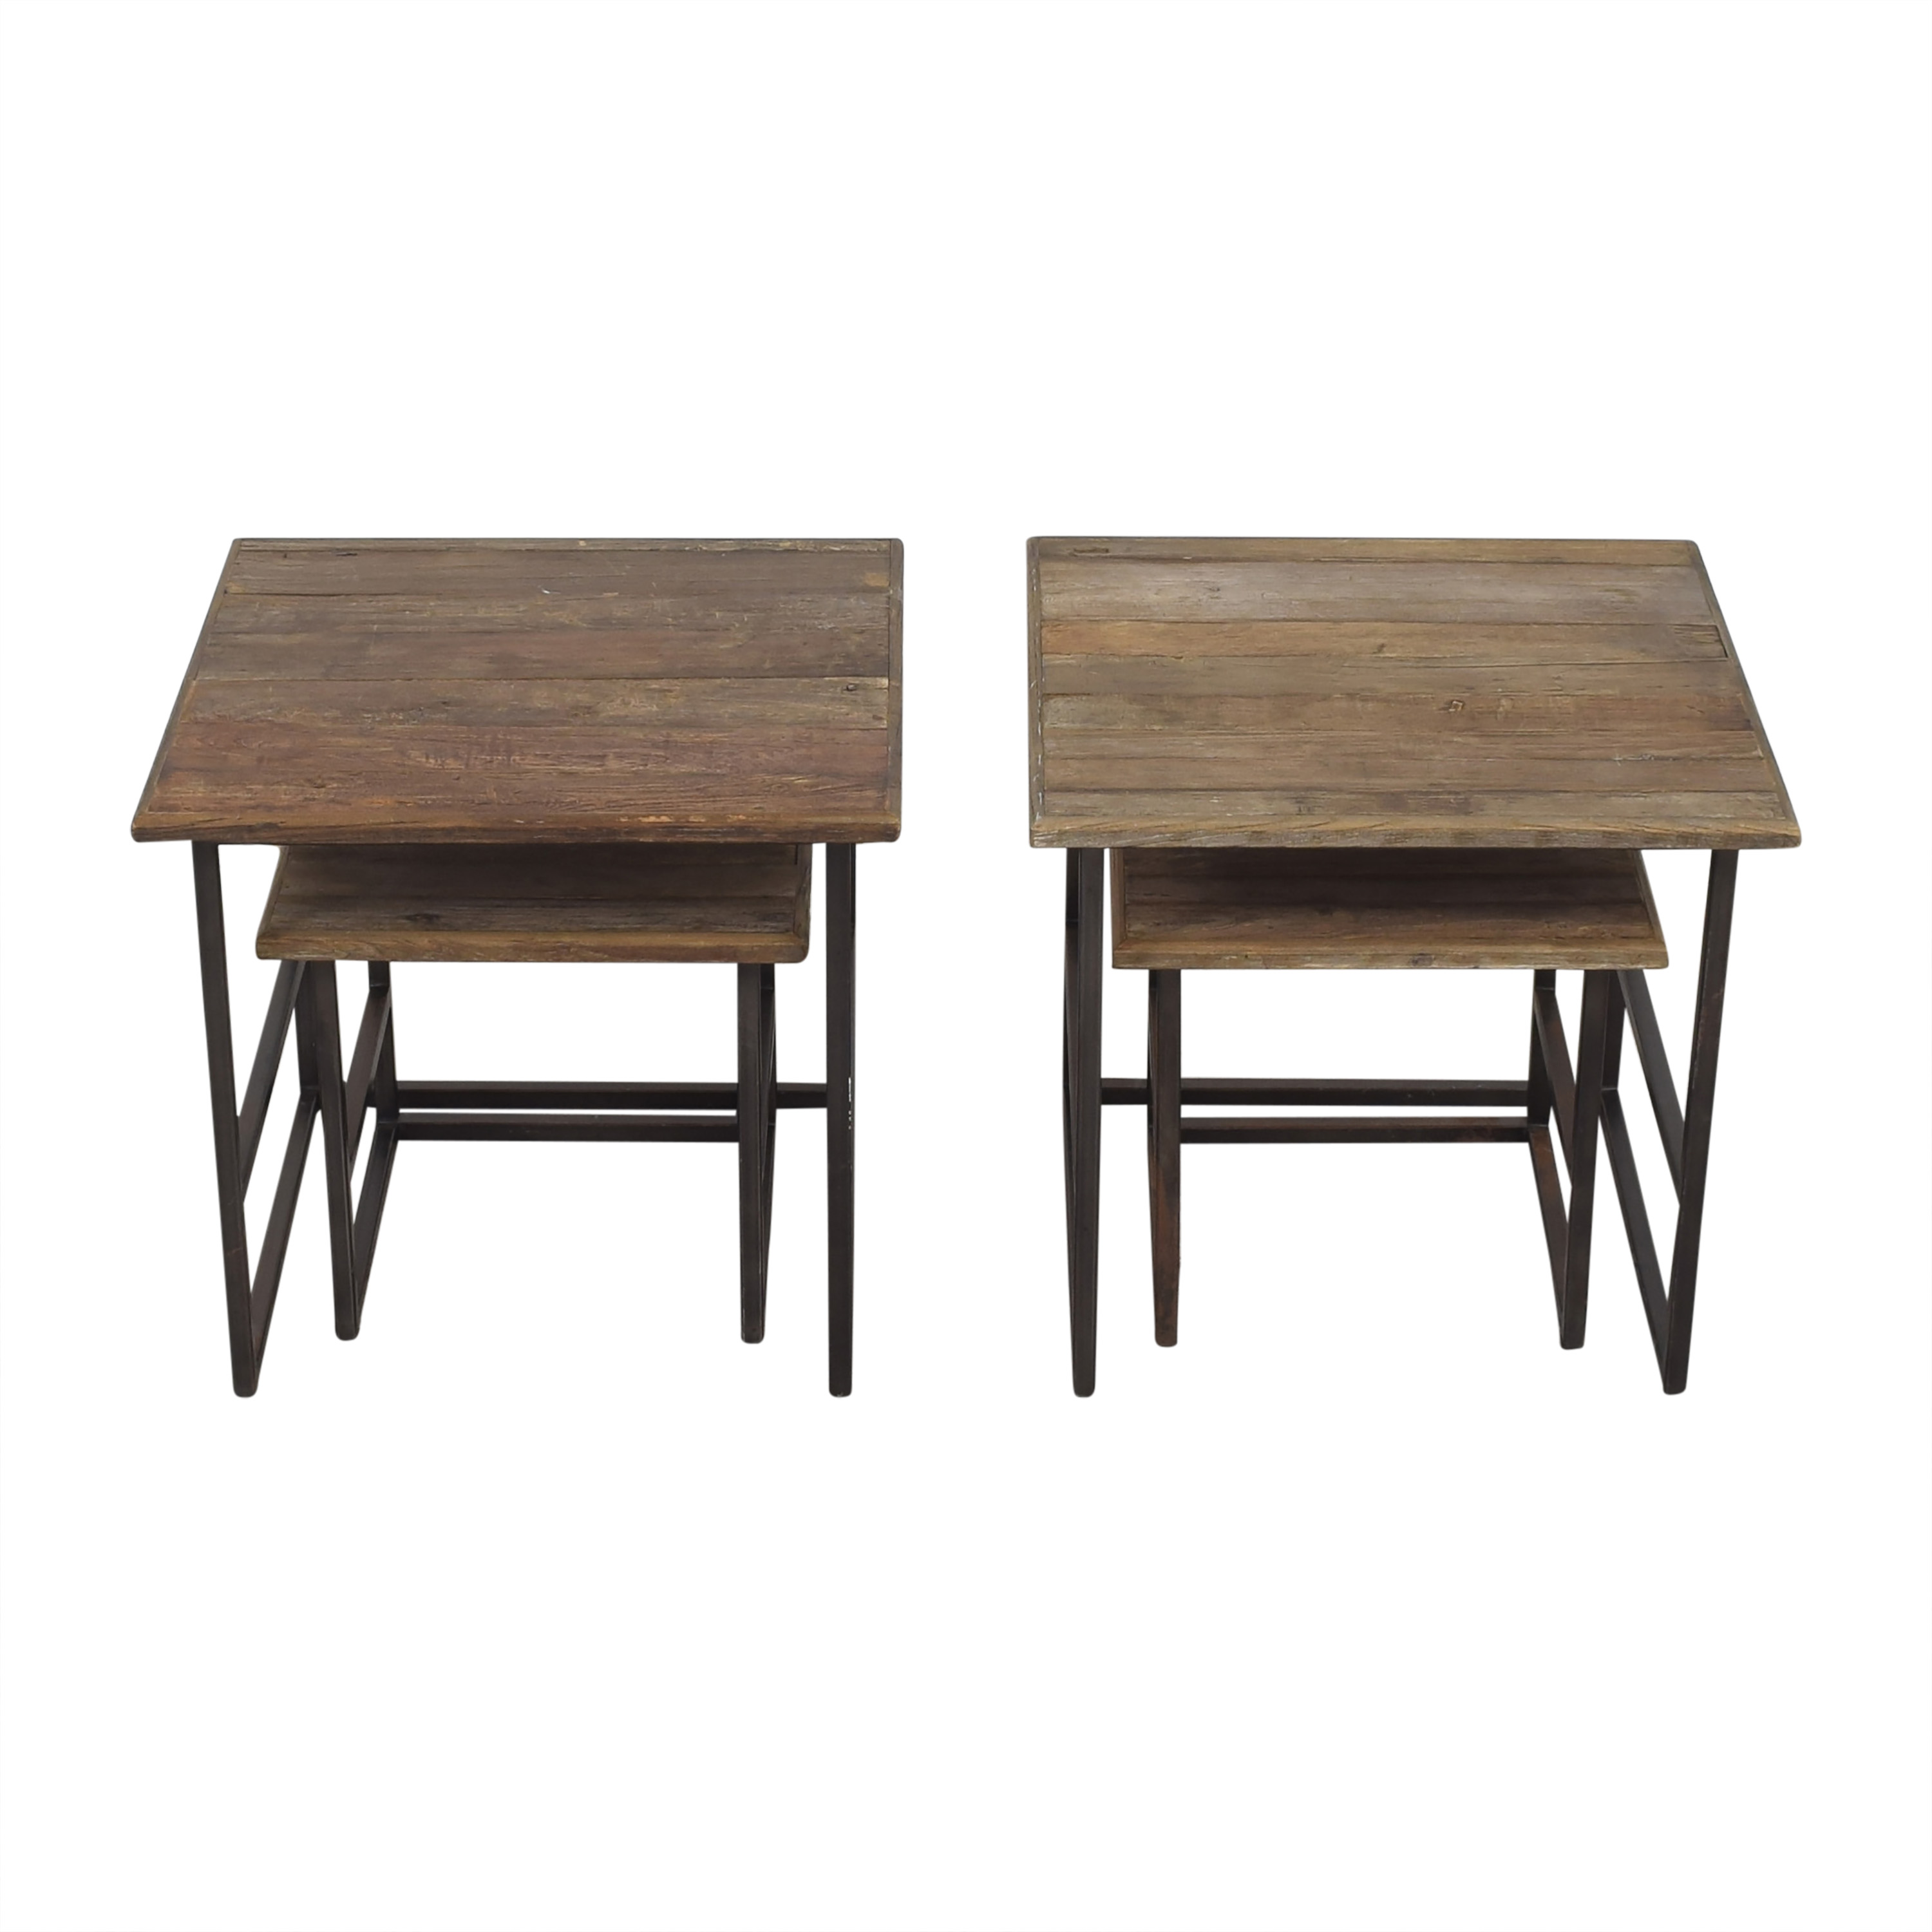 Restoration Hardware Restoration Hardware Rustic Nesting Side Tables End Tables